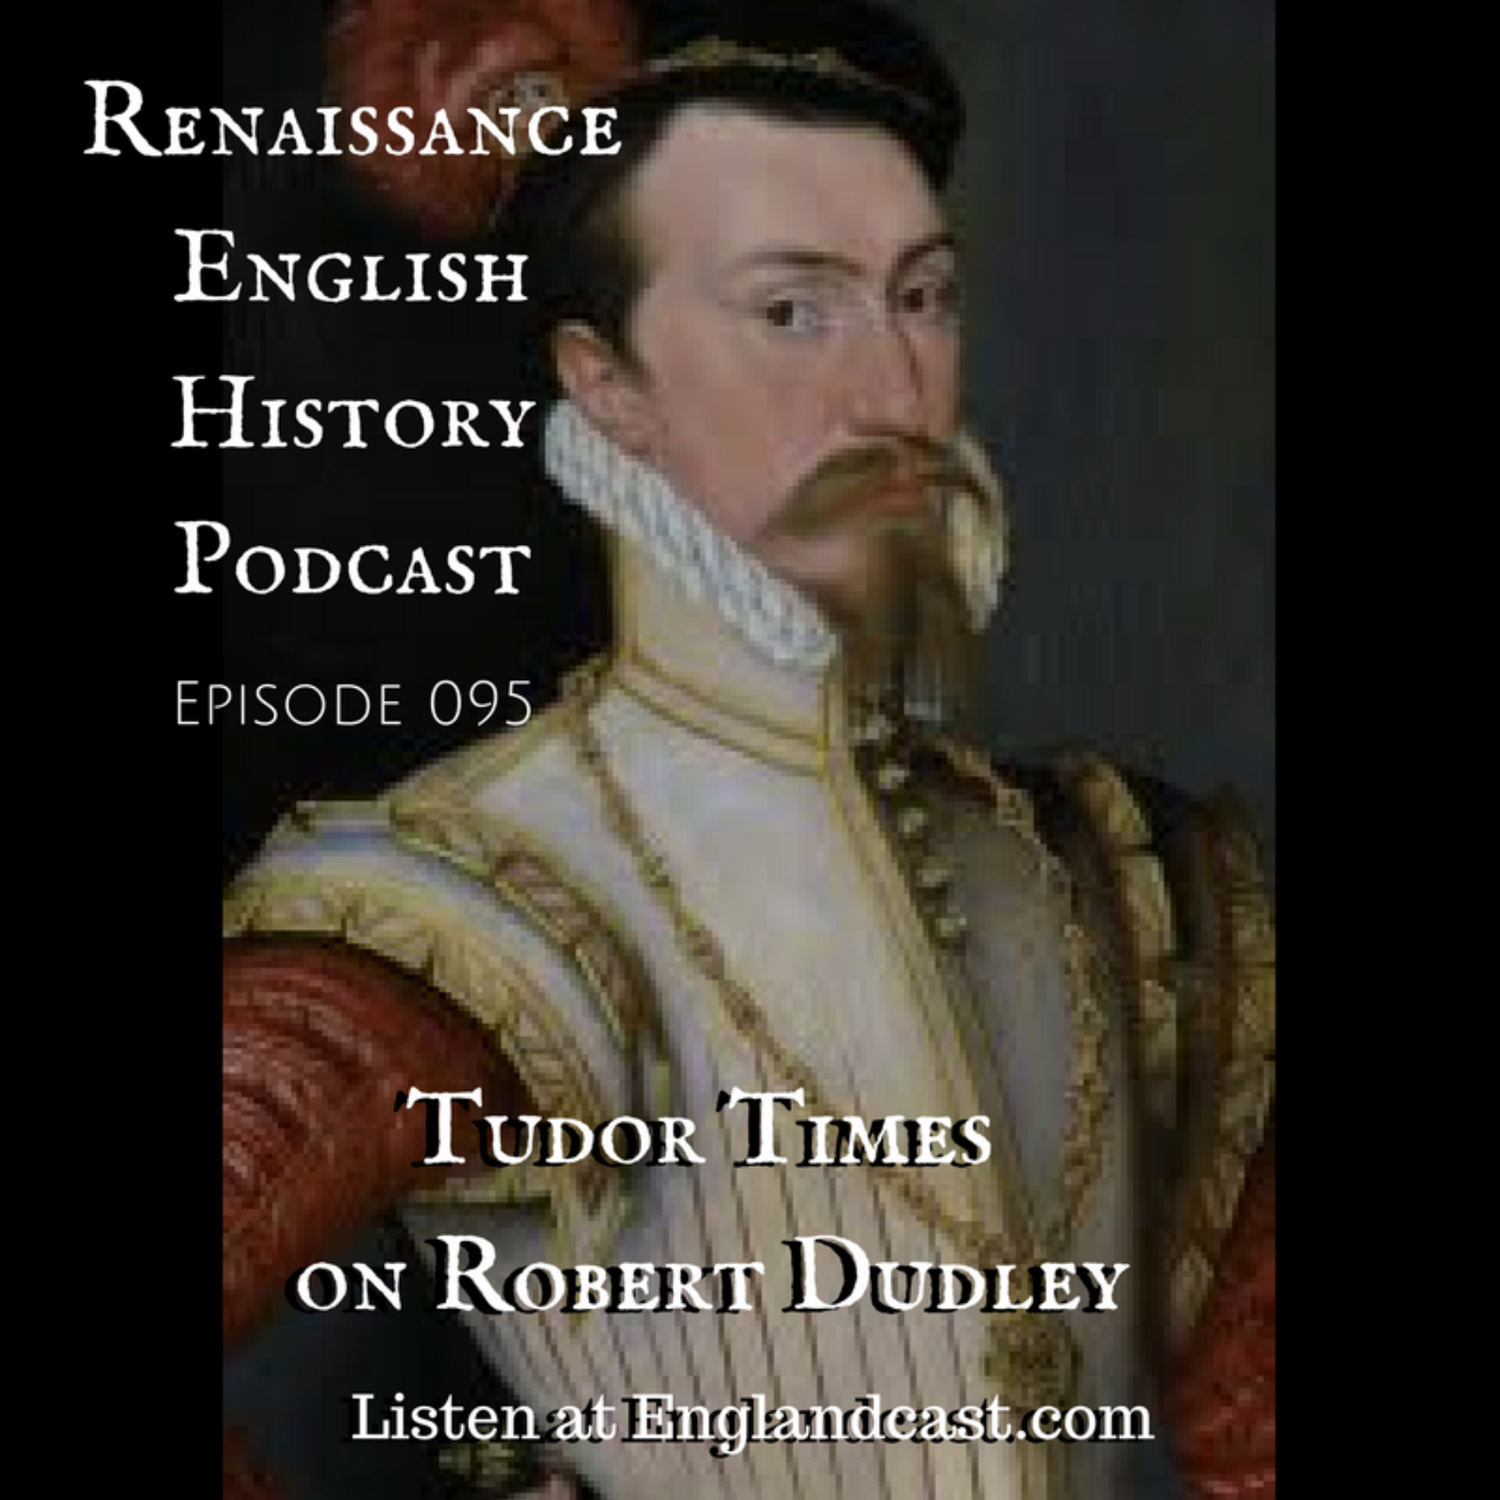 Episode 095: Tudor Times on Robert Dudley